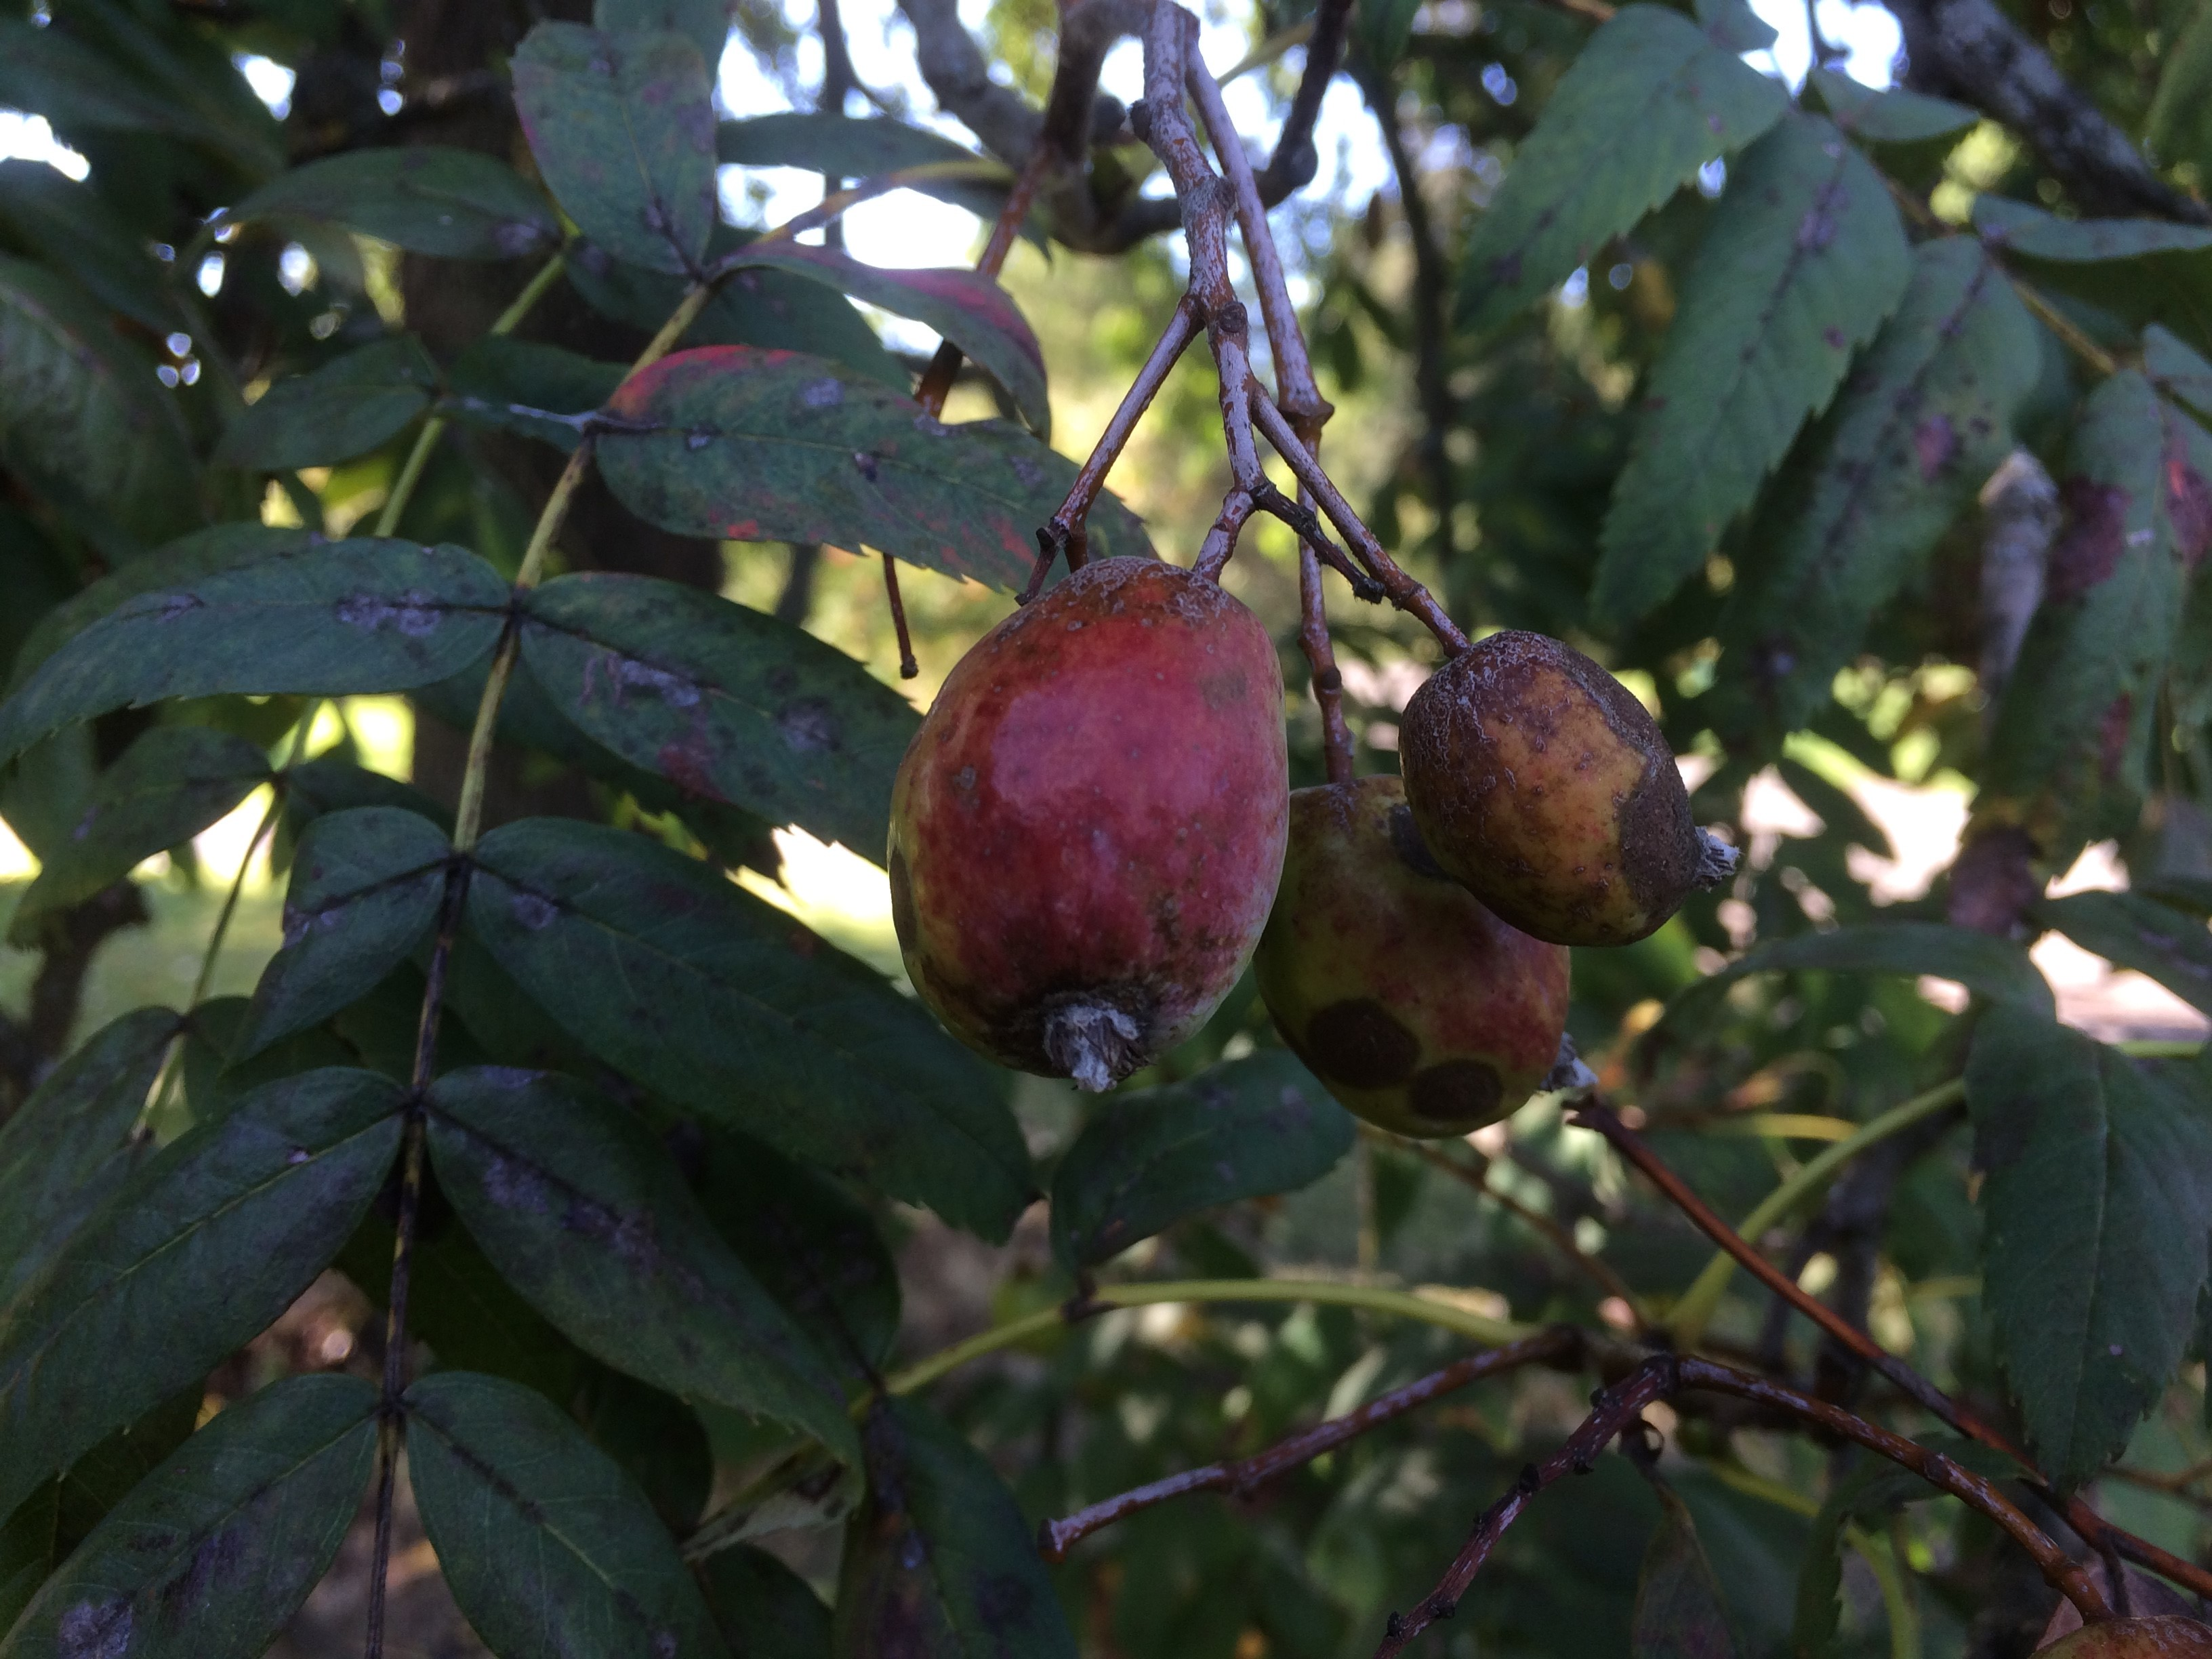 Fruits hanging from branch.